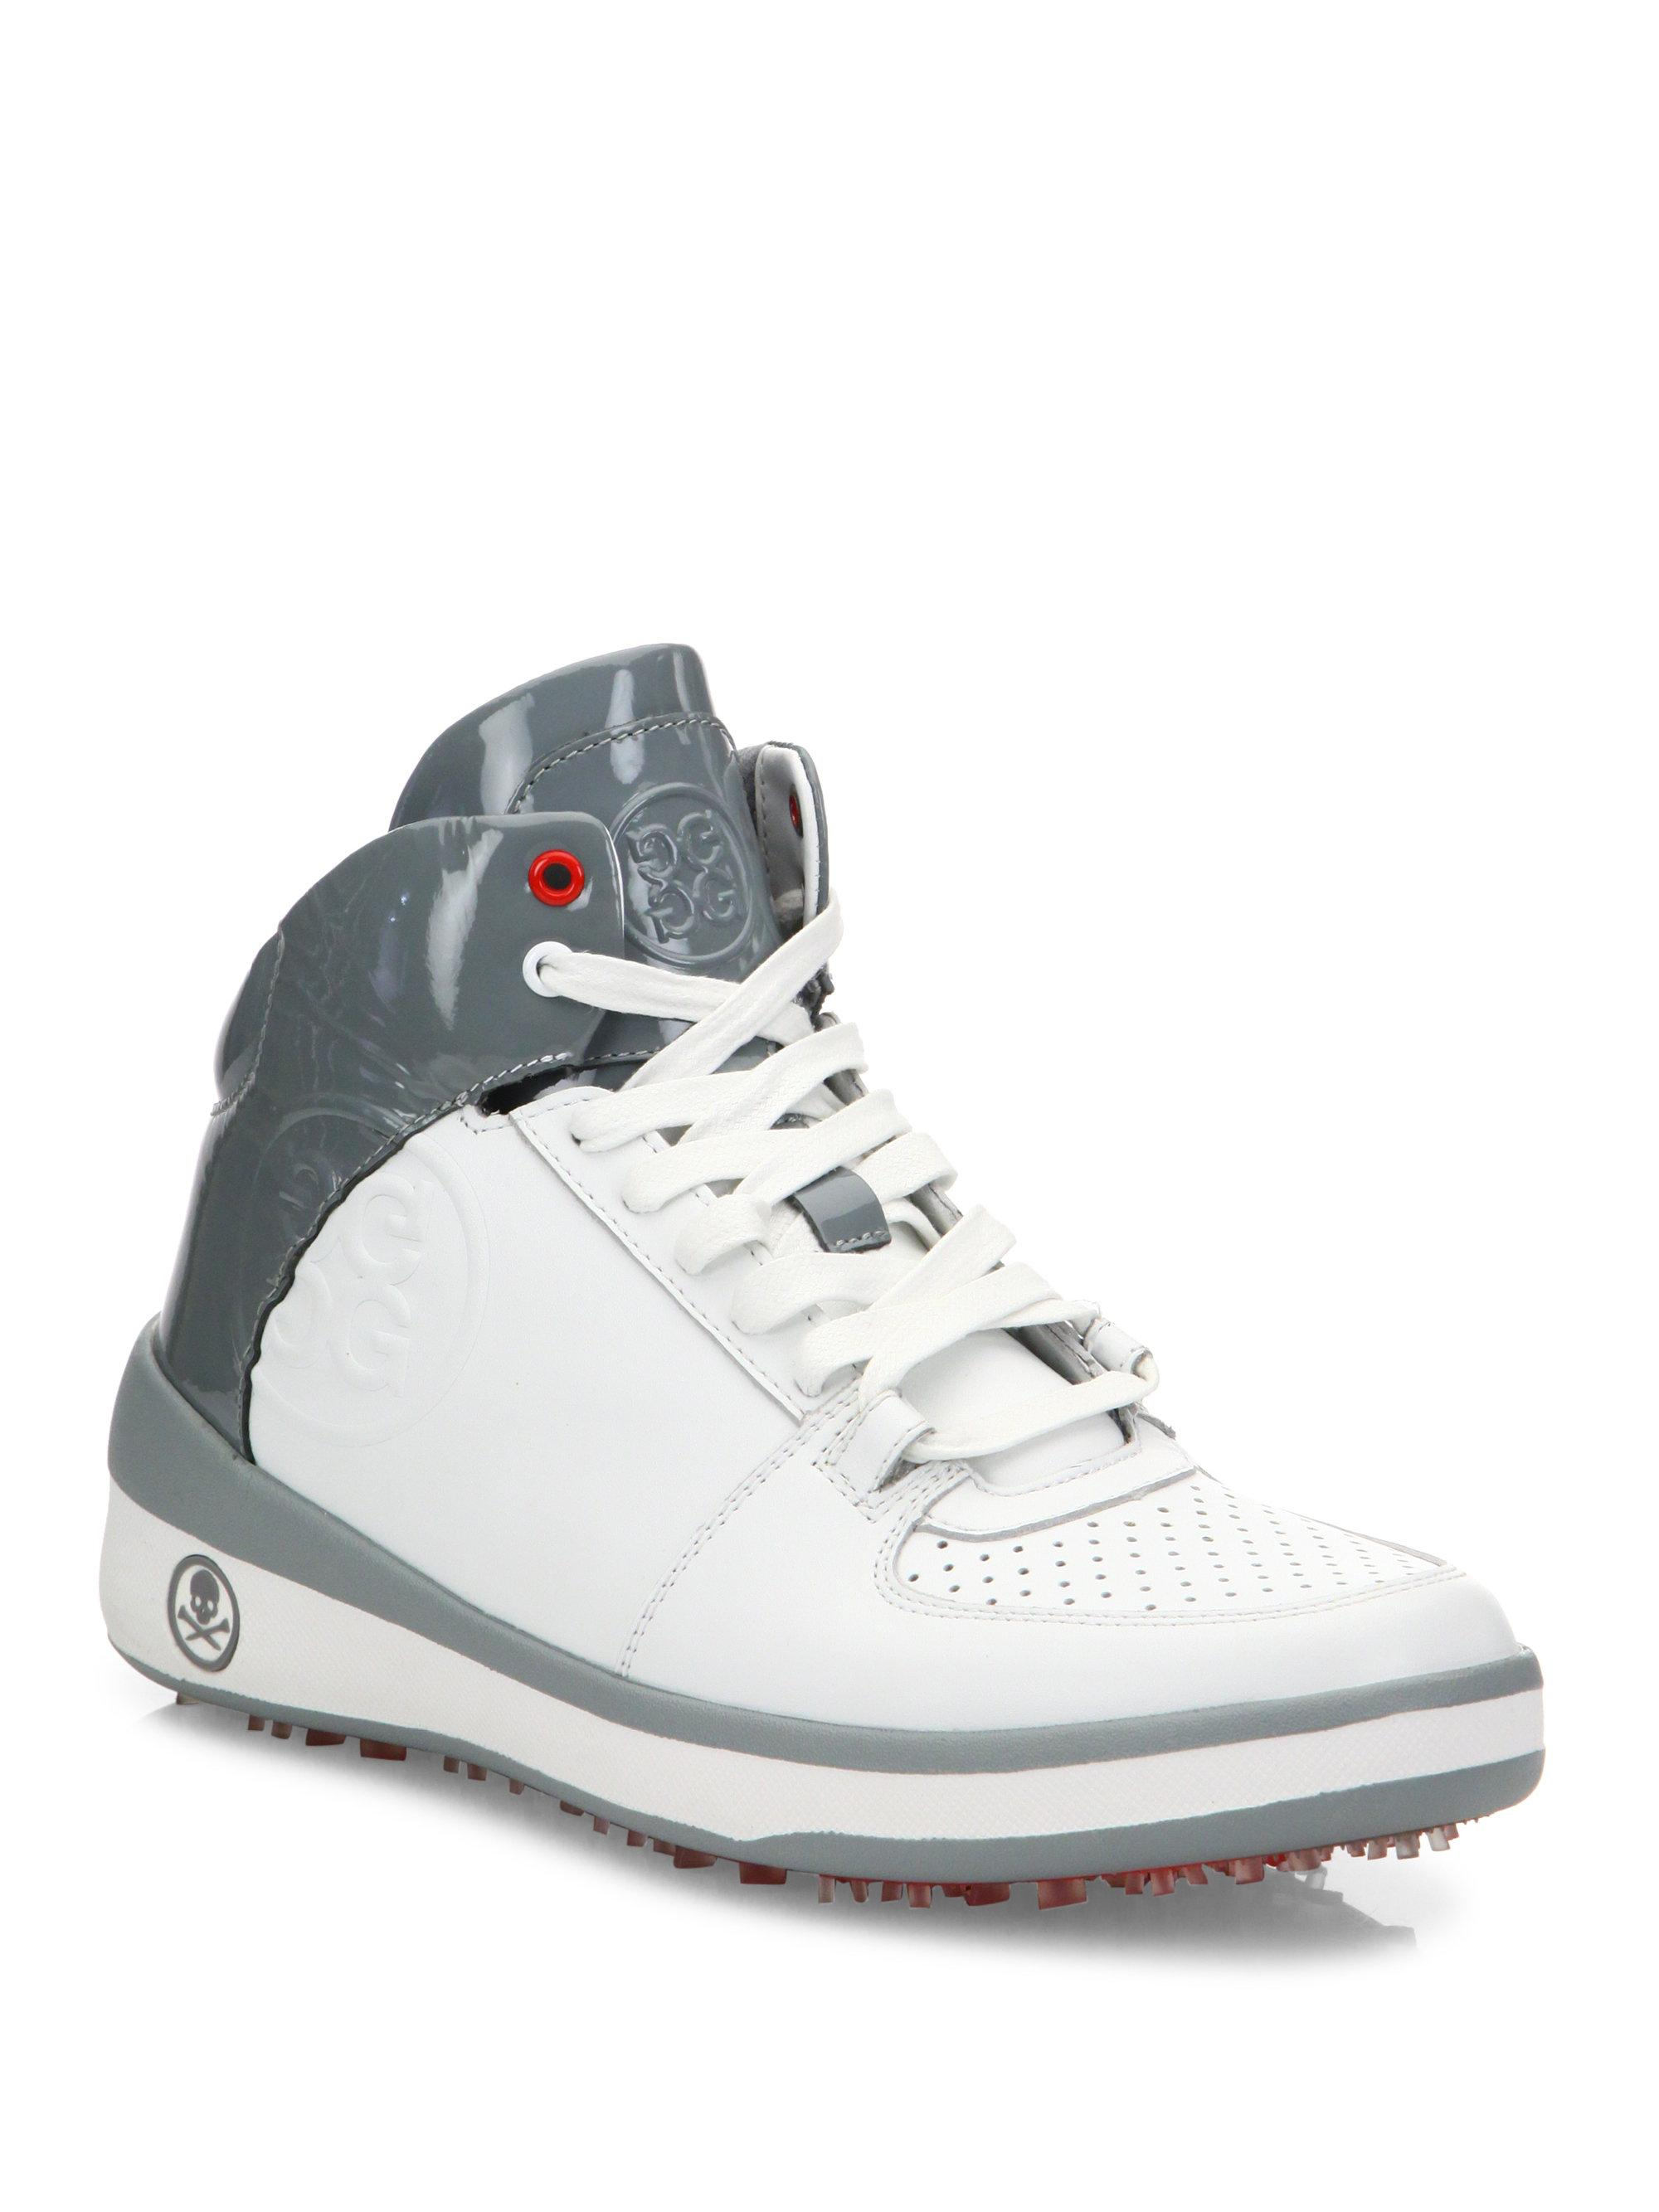 How To Waterproof Cloth Golf Shoes